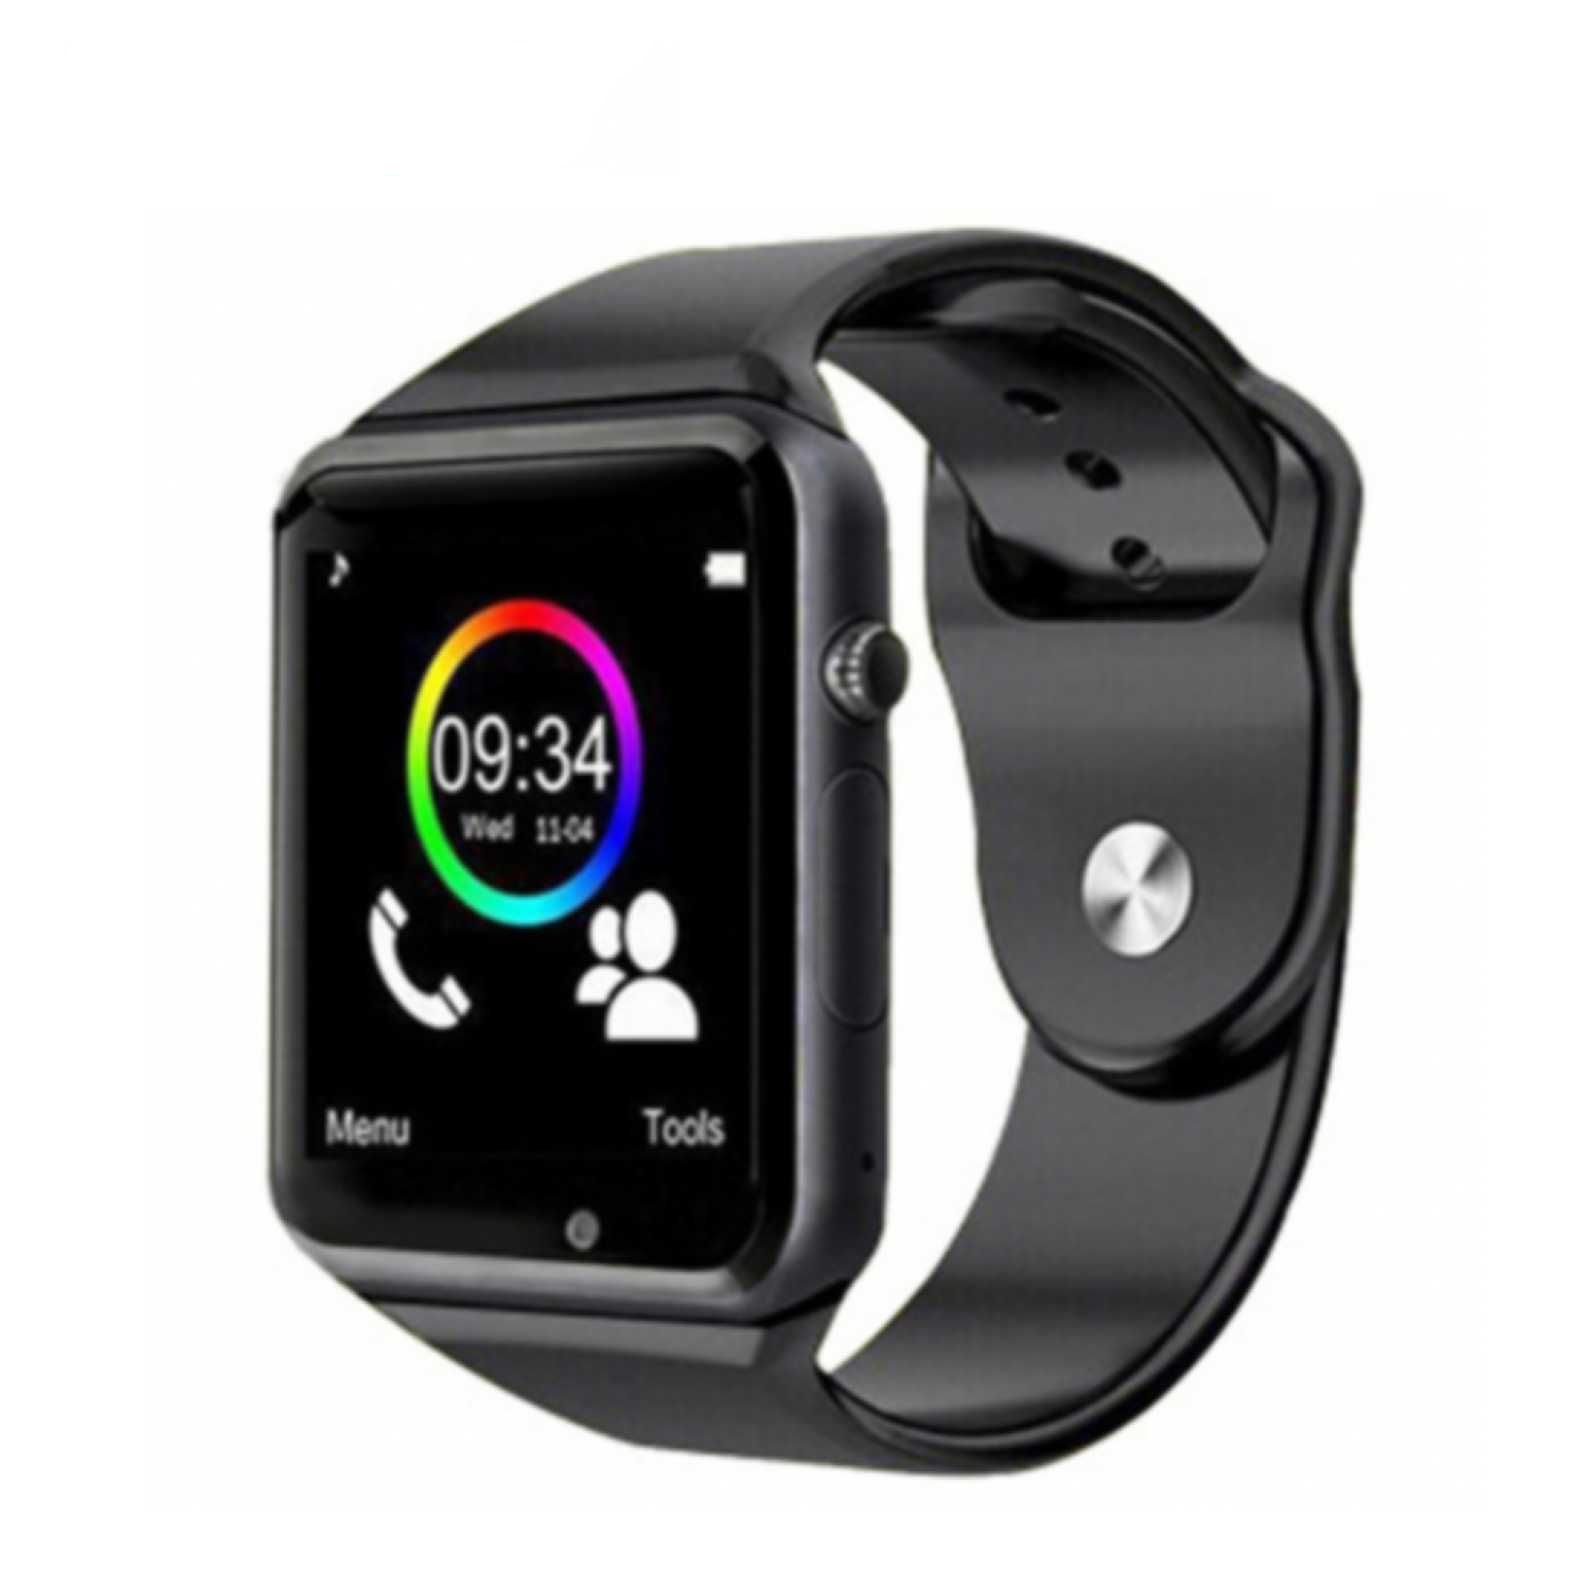 2019 New Style A1 Bluetooth Smart Watch Hd Screen Support Sim Card Wearable Devices Smartwatch For Apple Android Pk Dz09 Gt08 Watch Watches Men's Watches